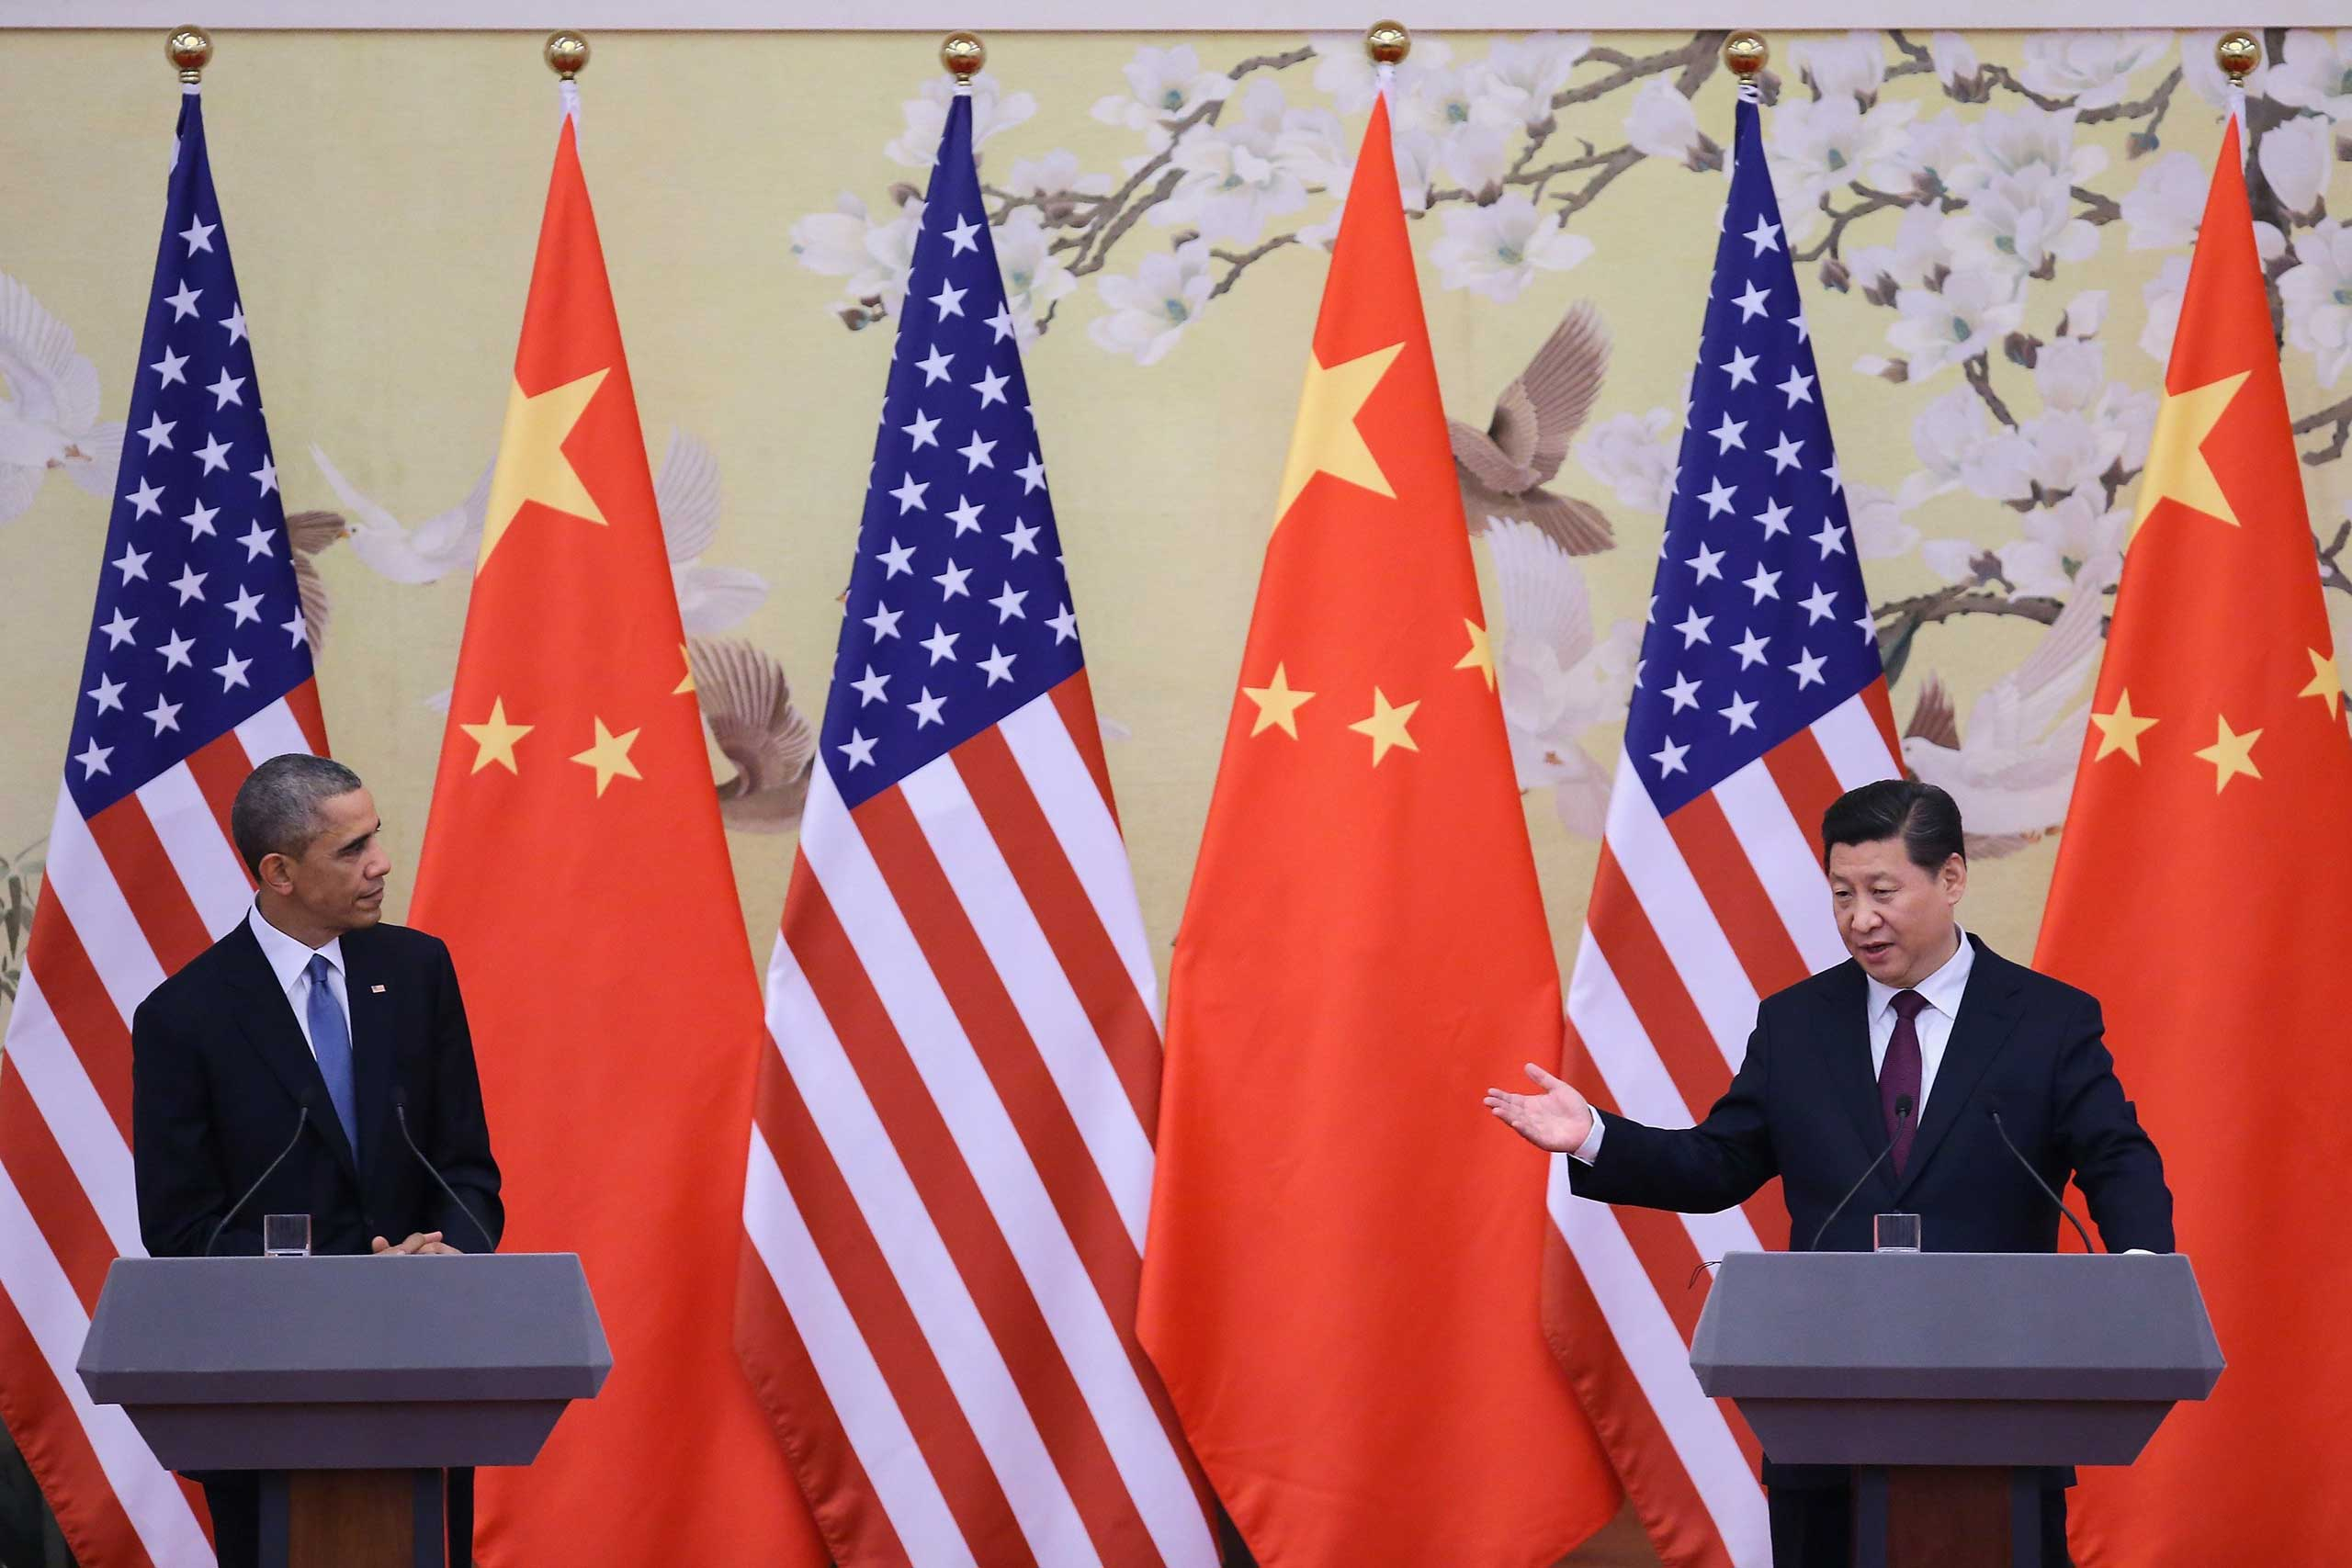 President Barack Obama and Chinese President Xi Jinping attend a press conference at the Great Hall of People on Nov. 12, 2014 in Beijing.